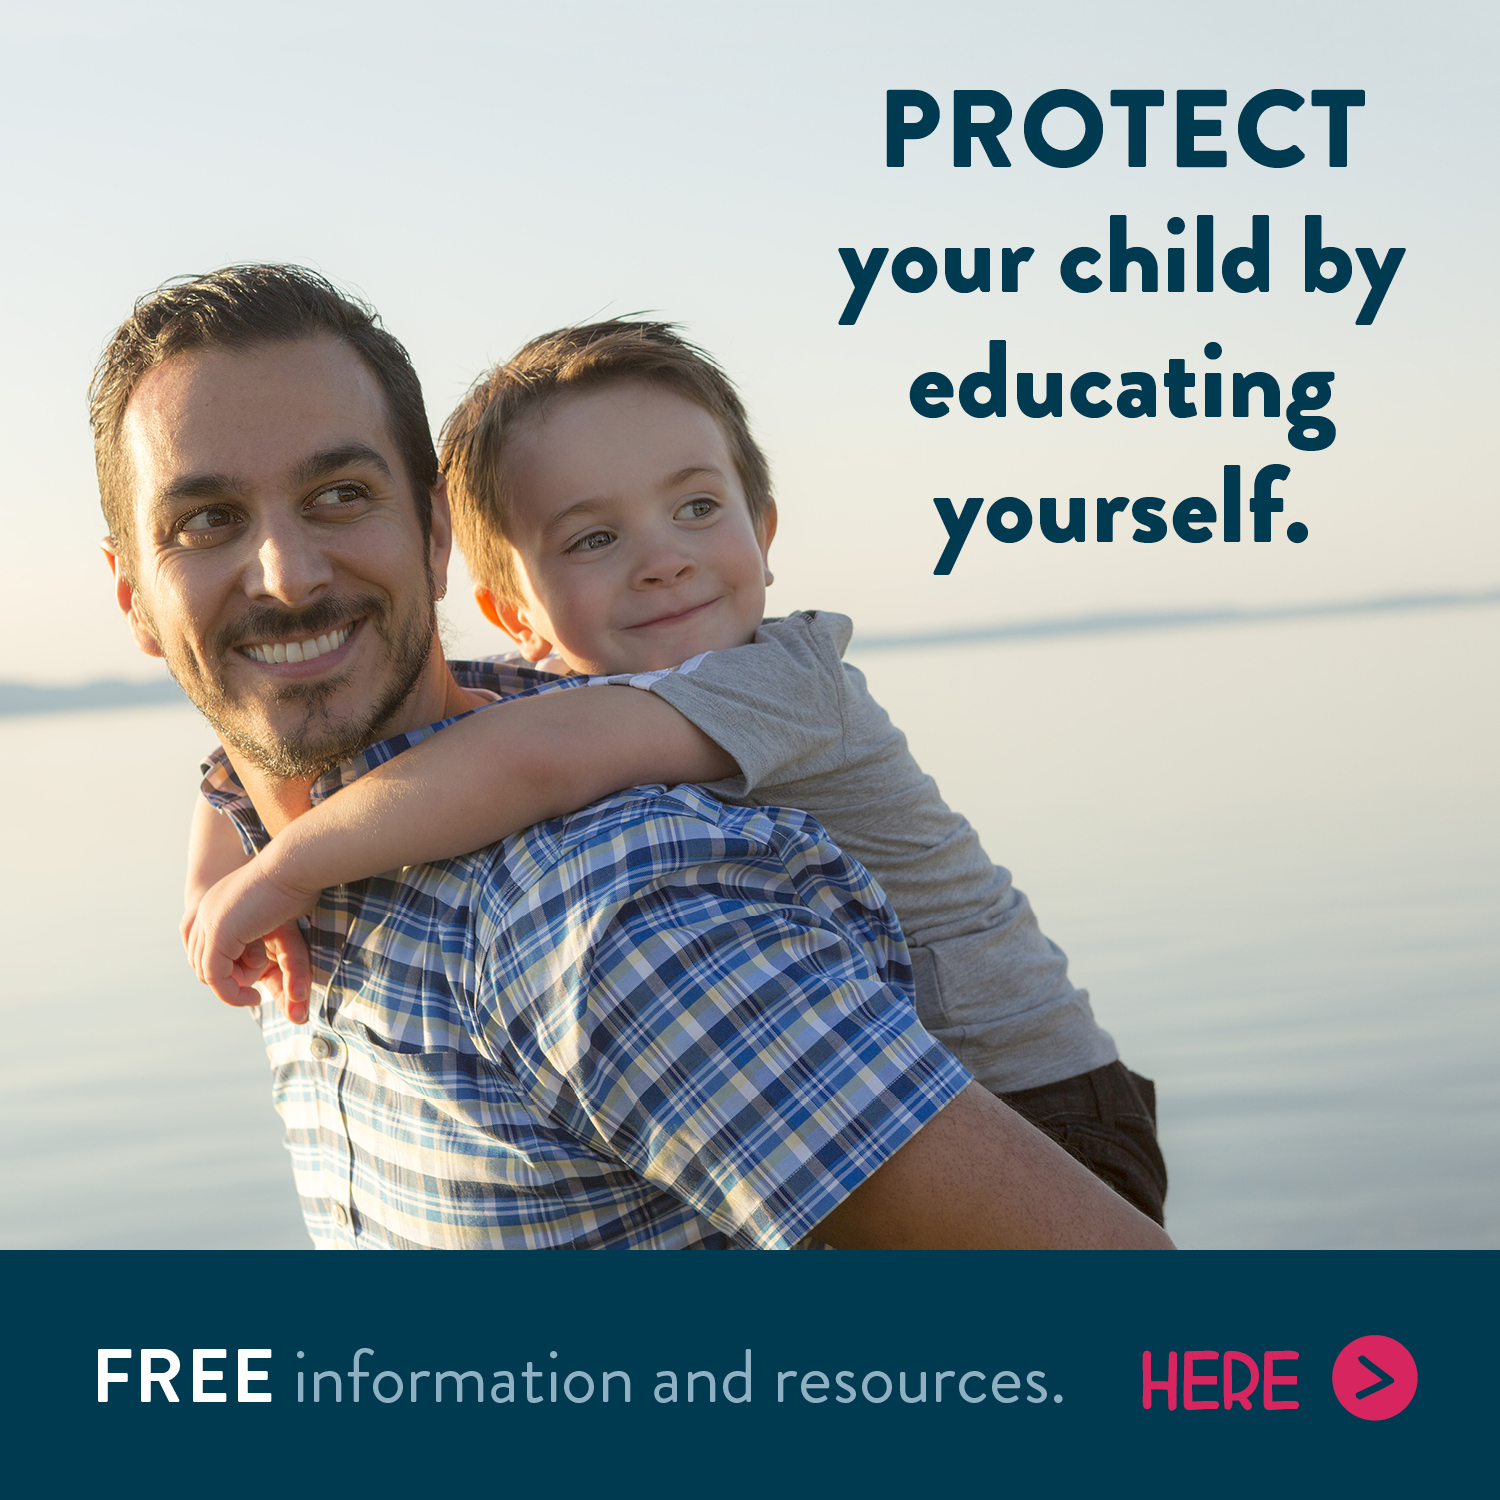 Protect your child by educating yourself.